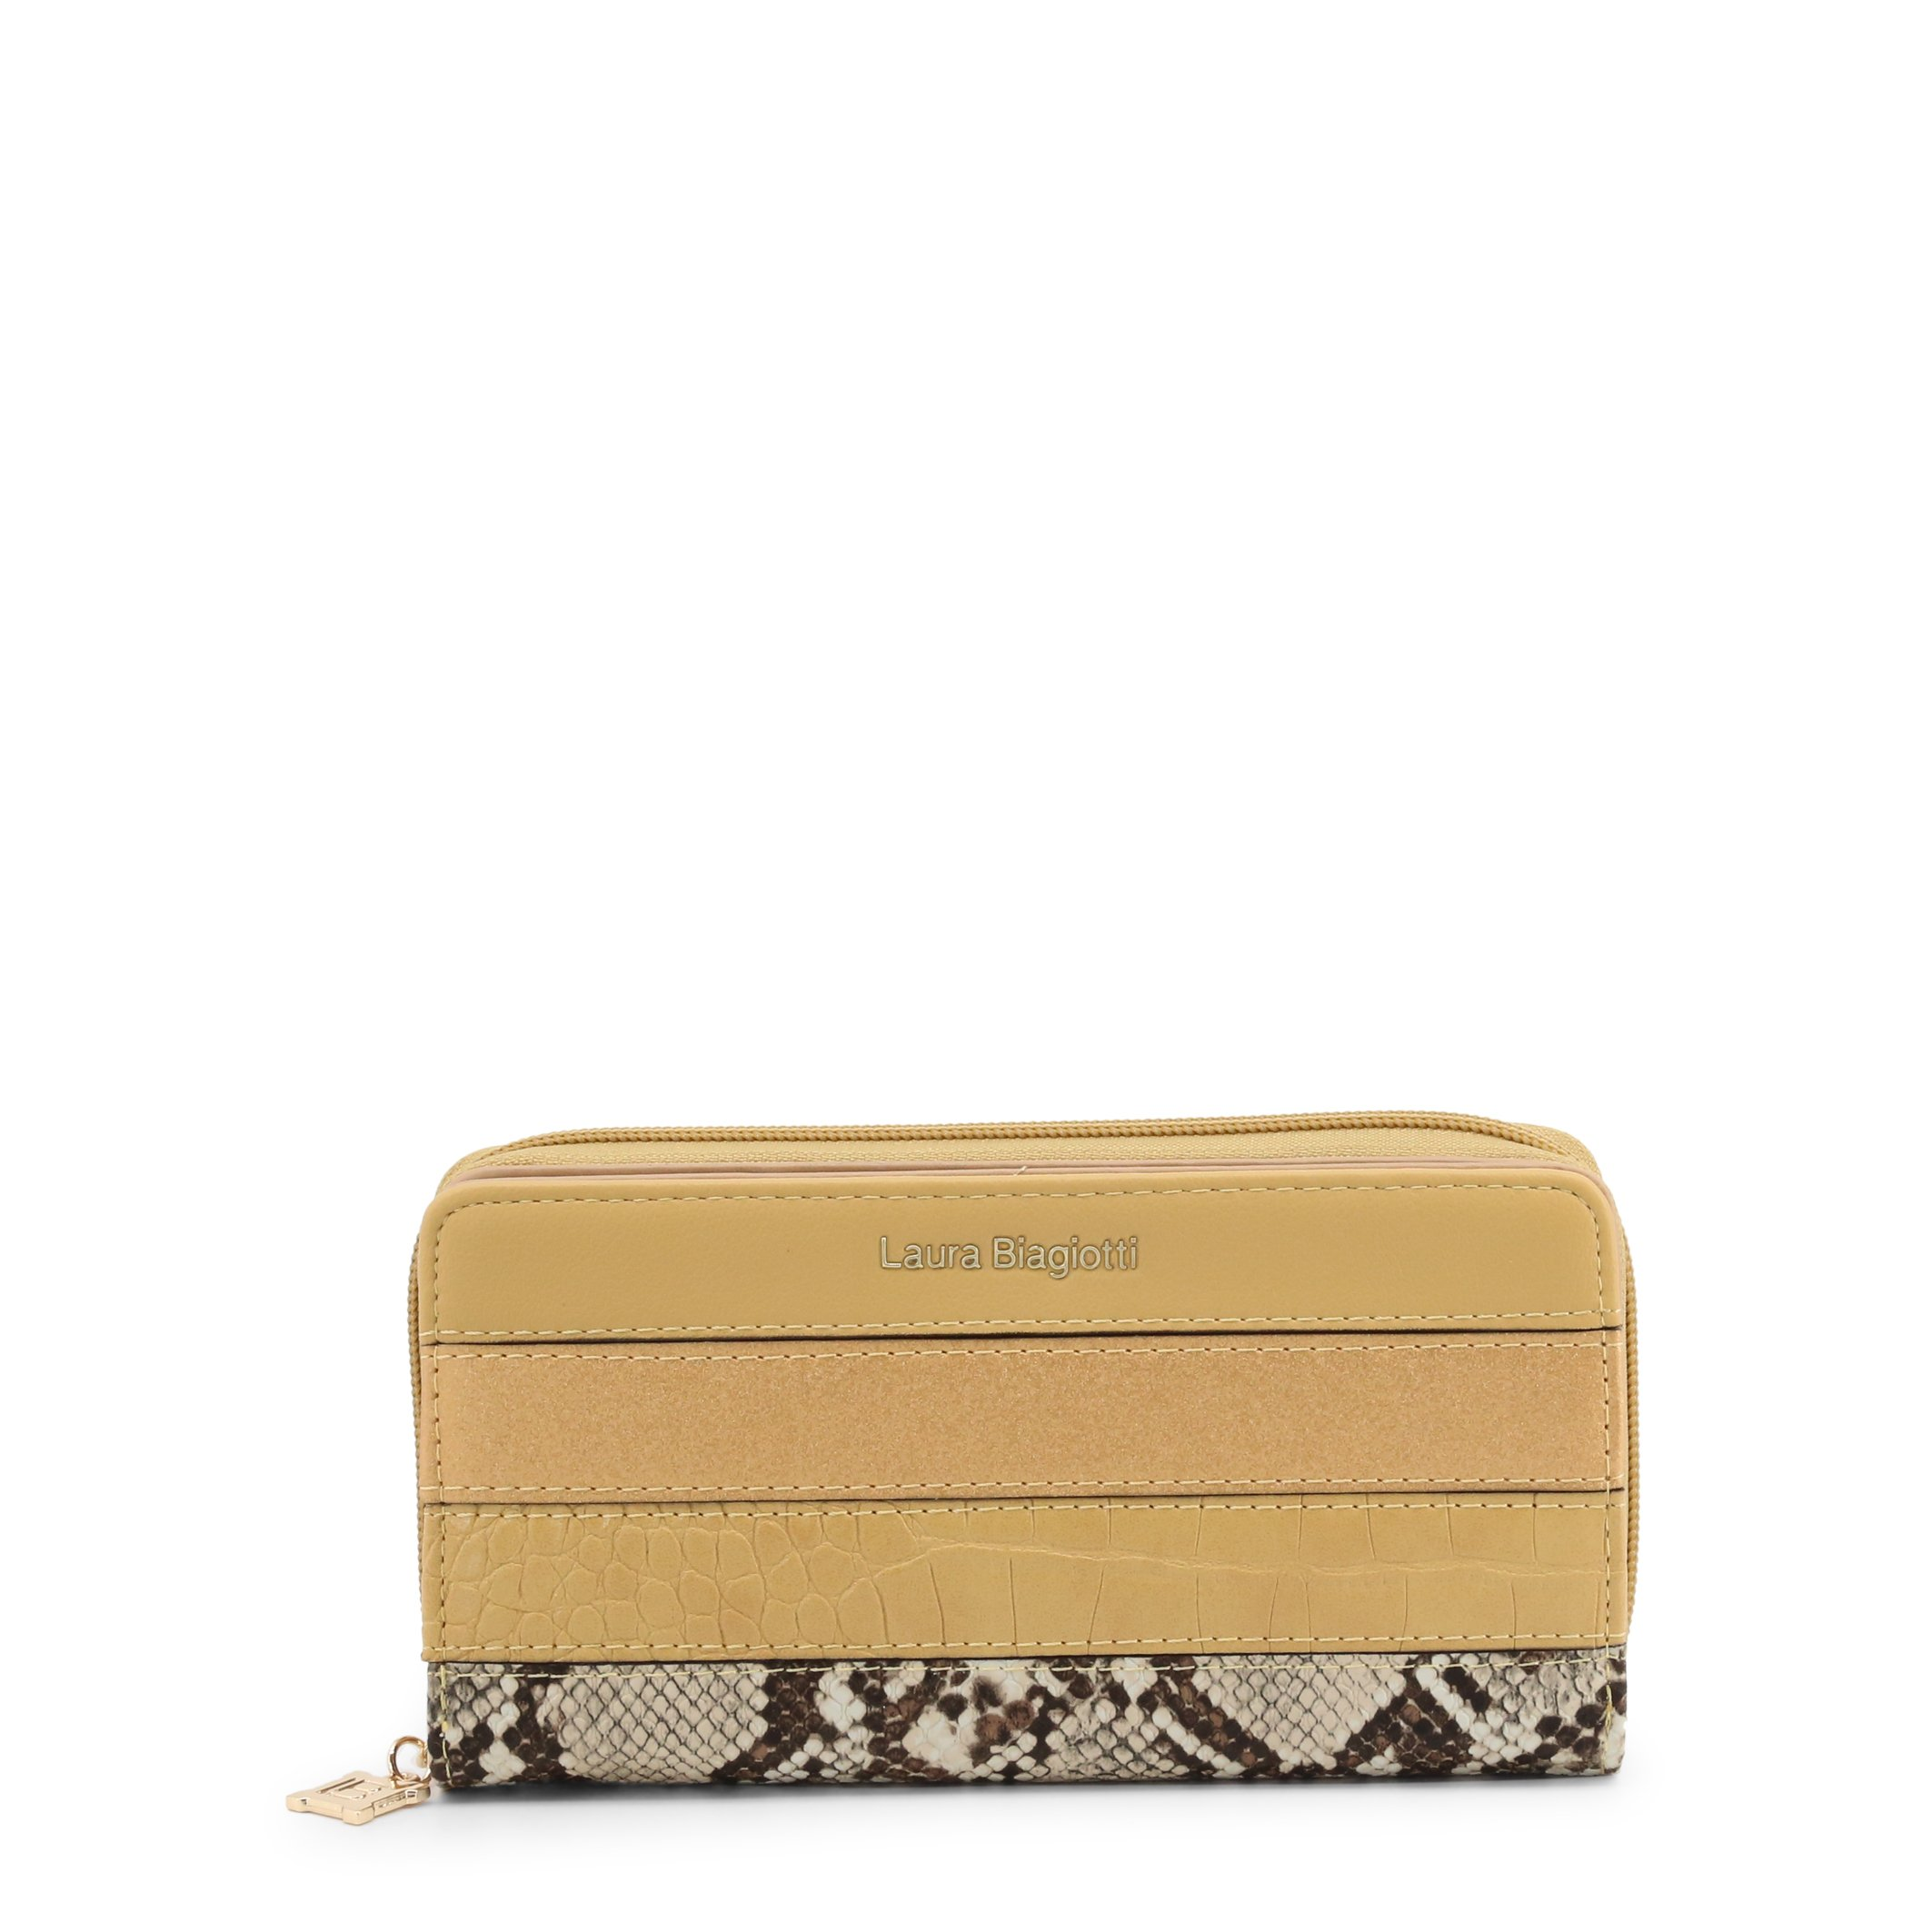 Laura Biagiotti Women's Wallet Various Colours Perrier_505-67 - yellow NOSIZE